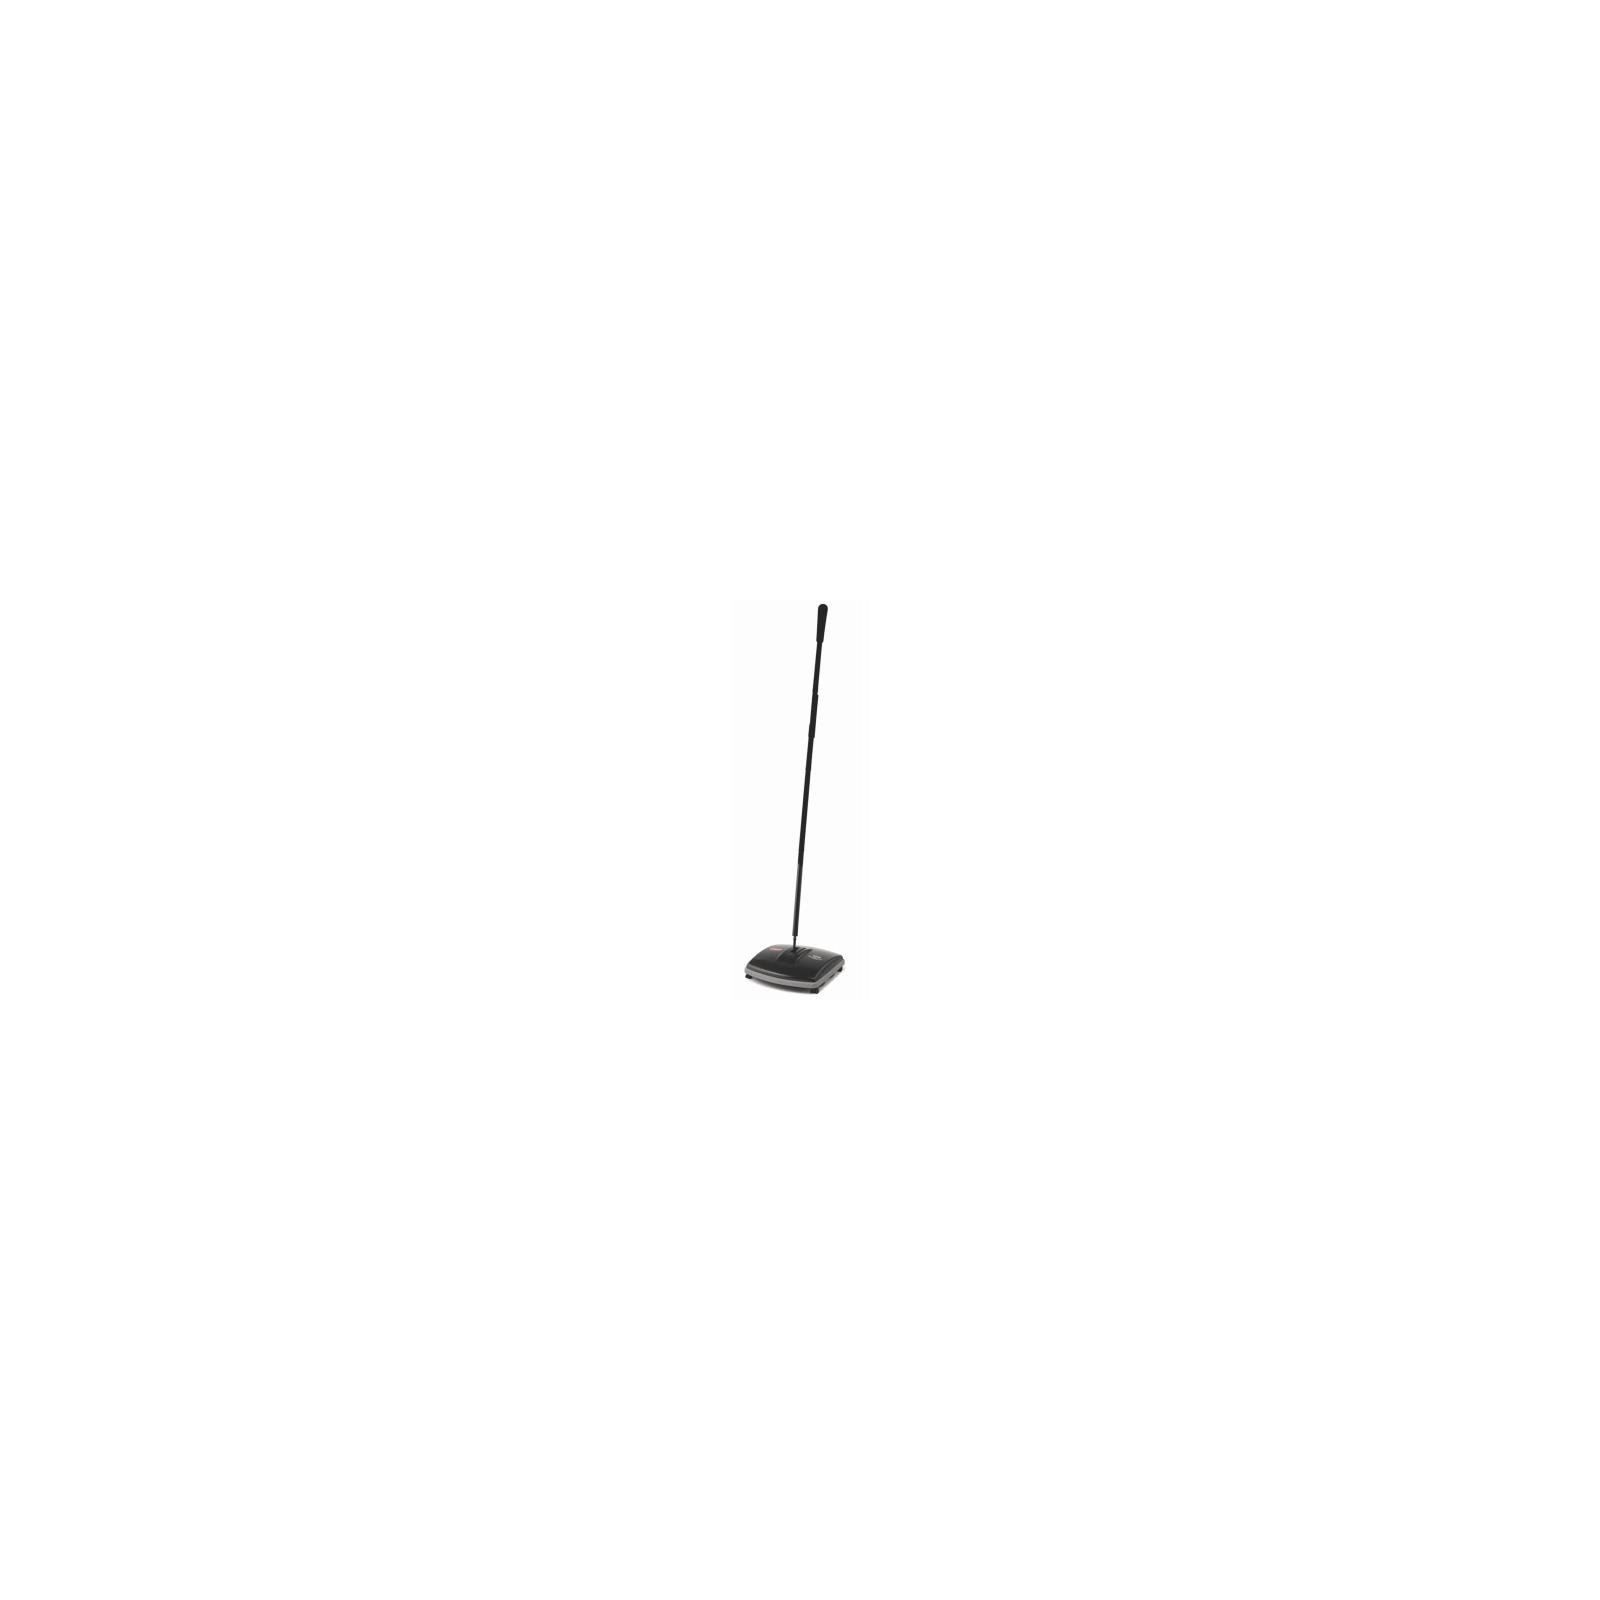 Rubbermaid Comm Prod FG421288BLA Floor/Carpet Sweeper, 6.5-In. - Quantity 4 by Rubbermaid Commercial Products